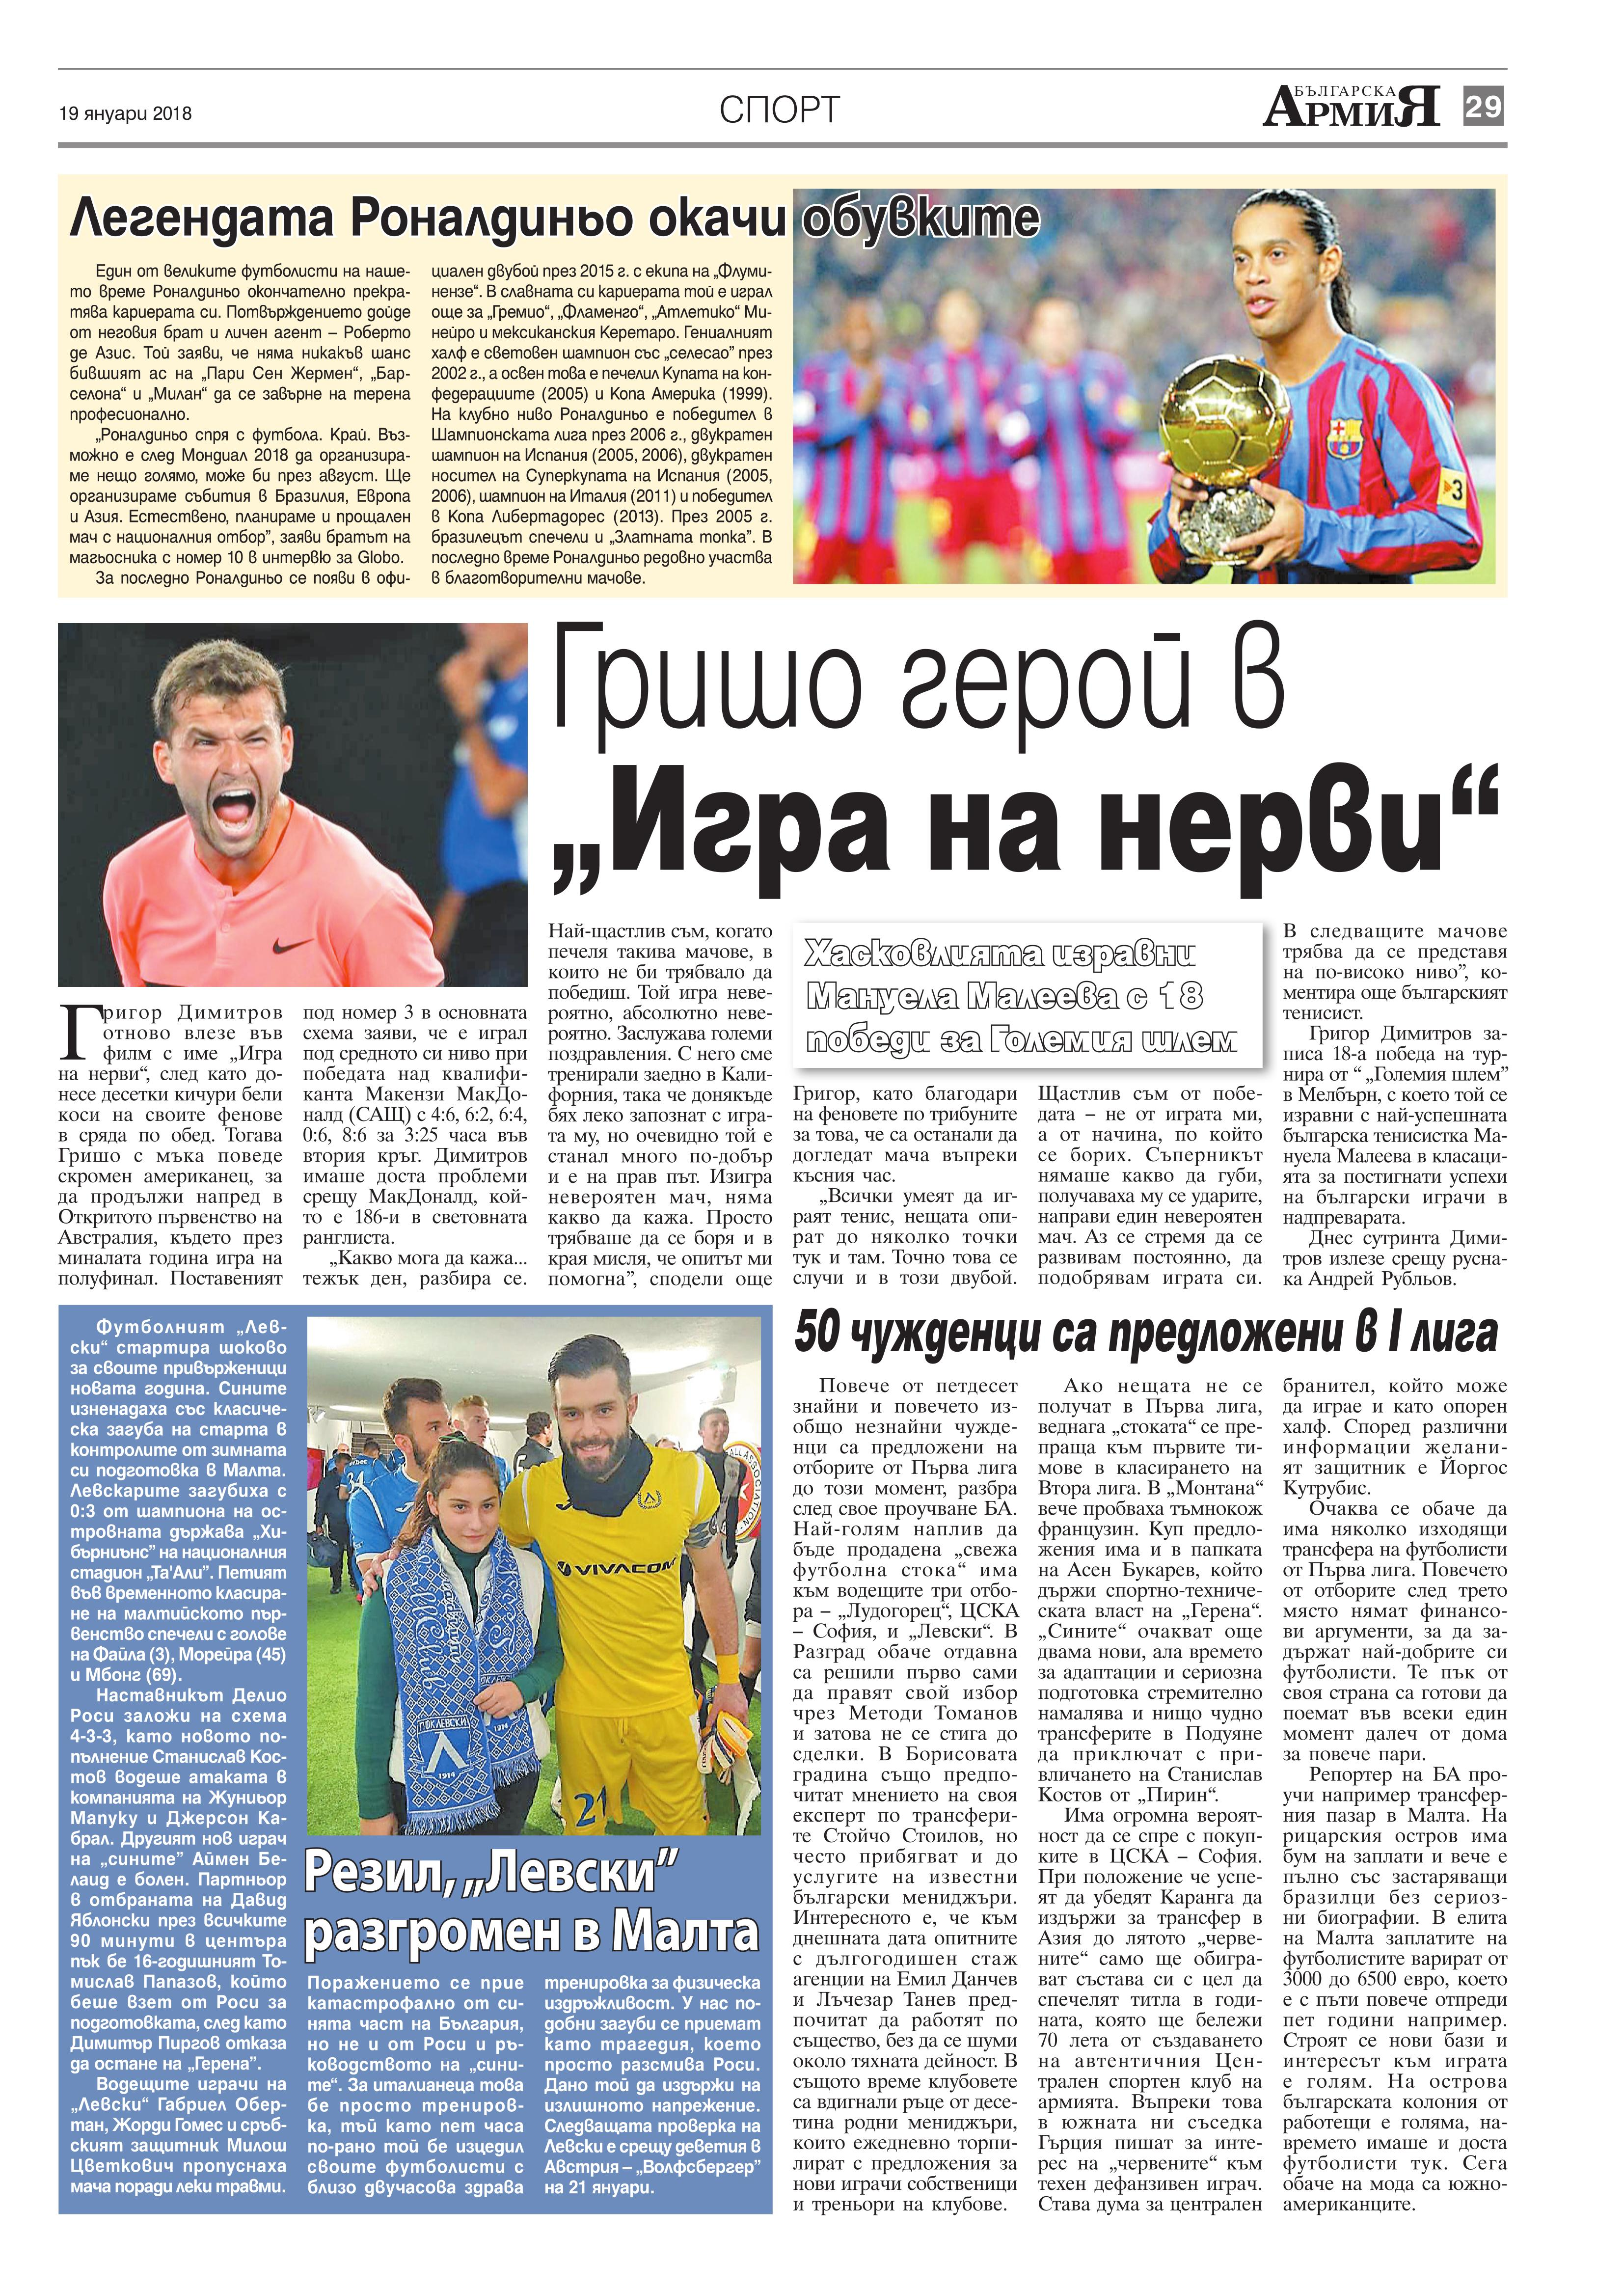 http://armymedia.bg/wp-content/uploads/2015/06/29.page1_-33.jpg